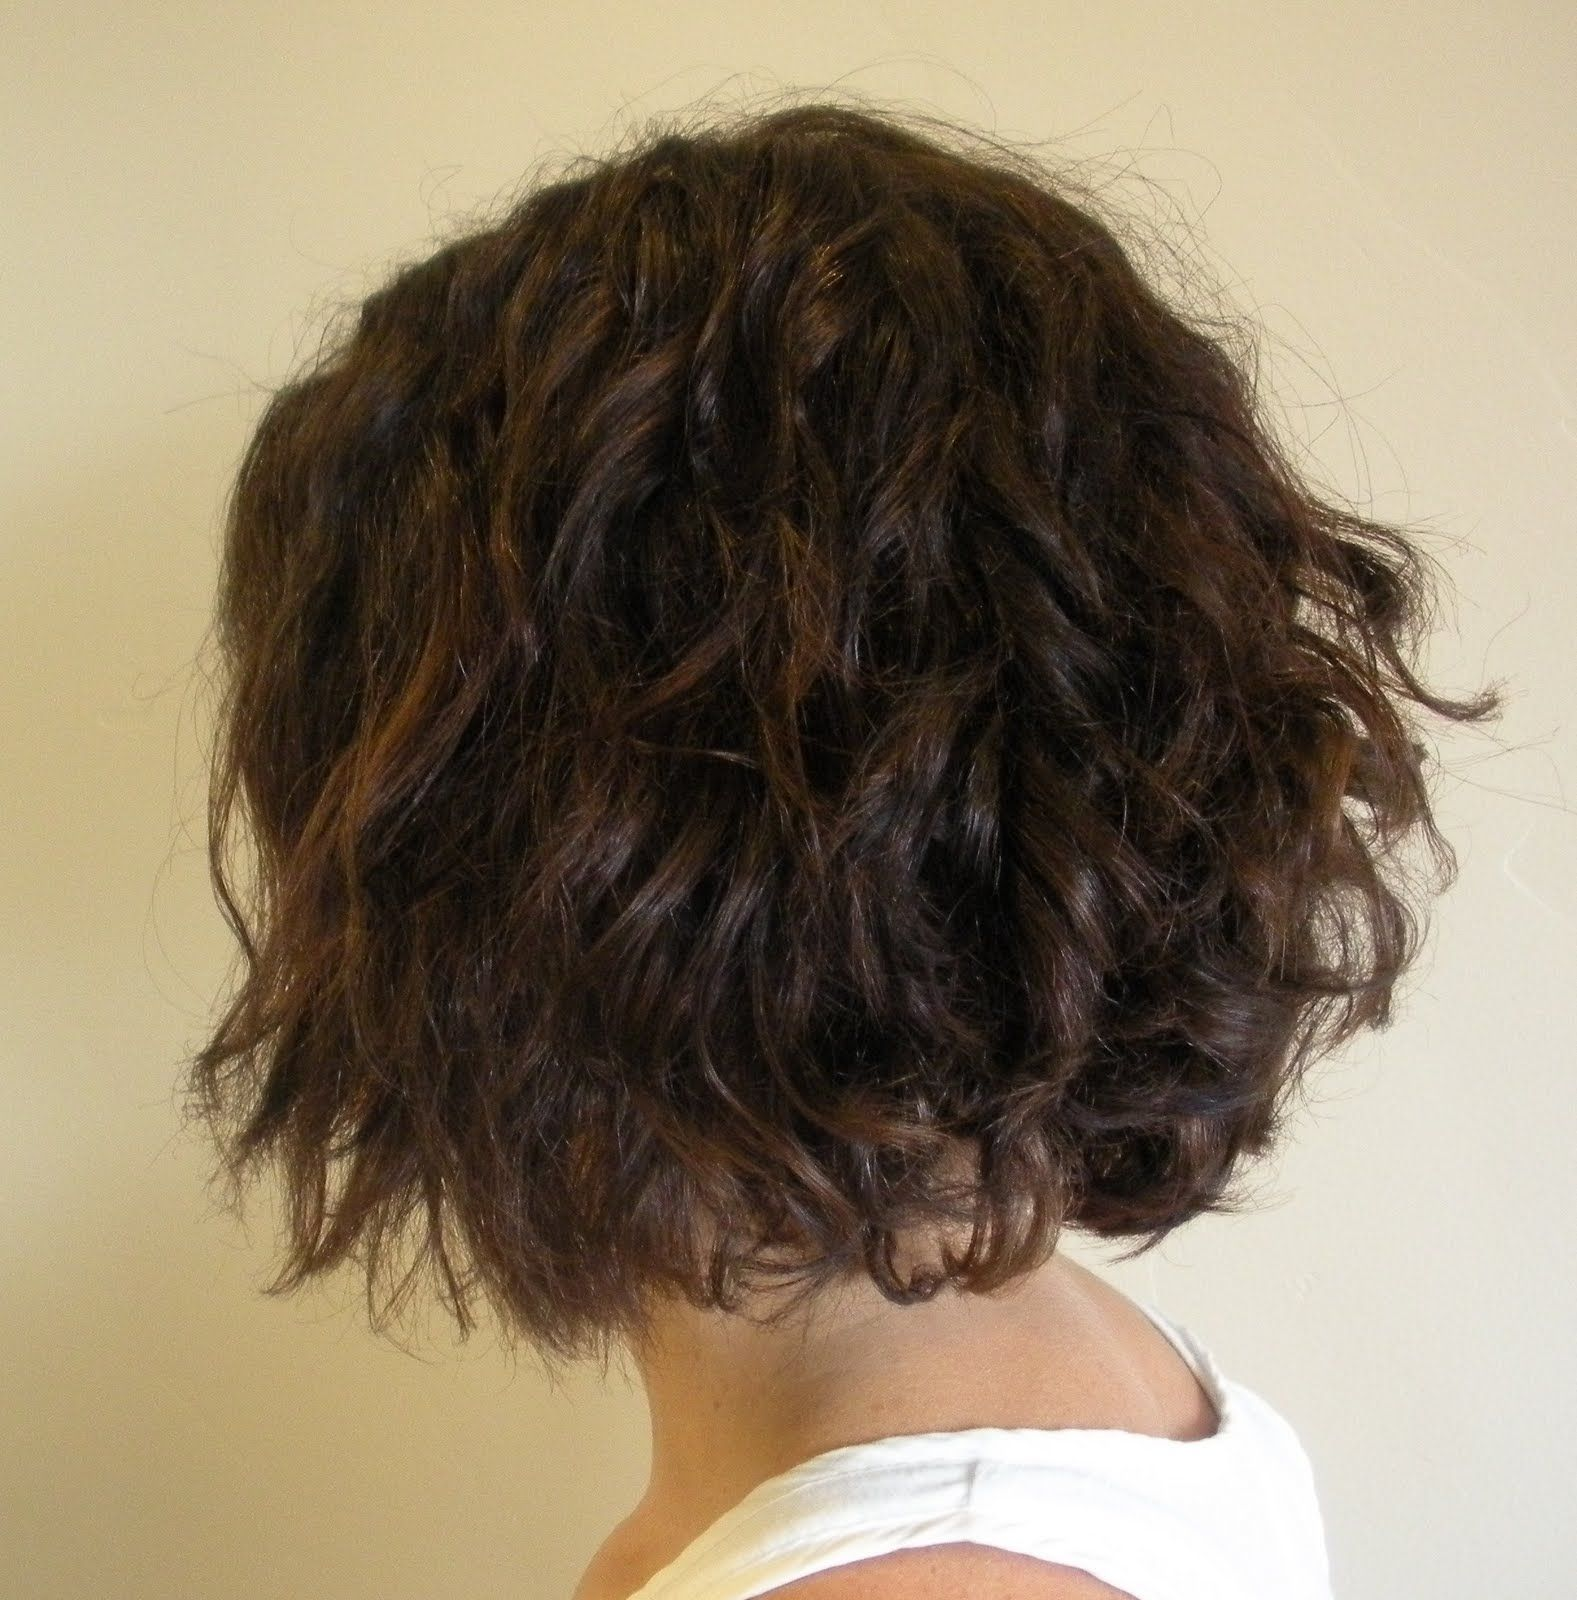 Beach Wave Perm Wave Perm Short Hair Loose Perm Short Hair Short Permed Hair